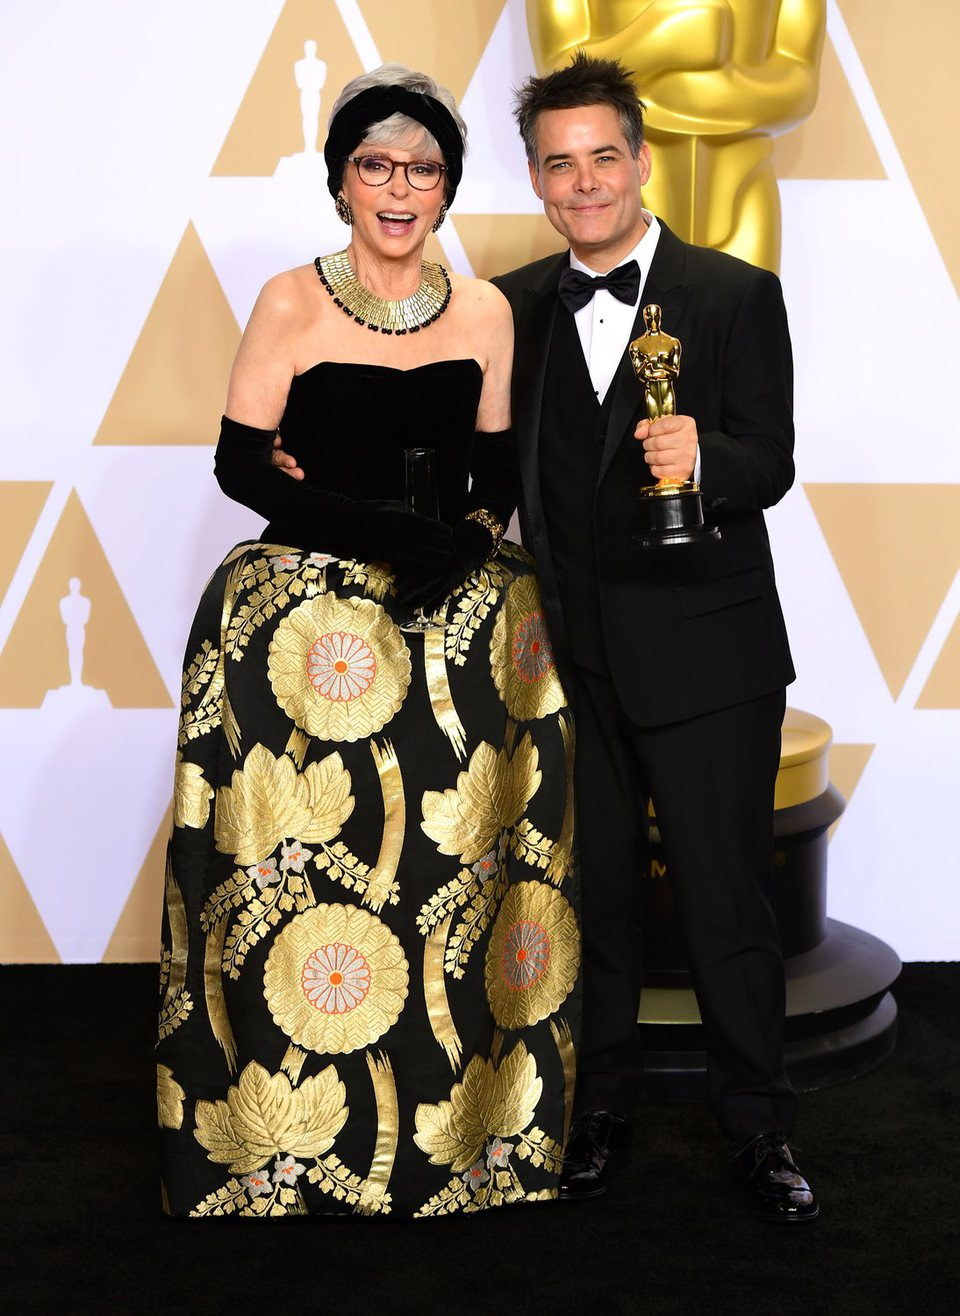 Sebastian Lelio, winner of Best Foreign Language Film Oscar for 'A Fantastic Woman'